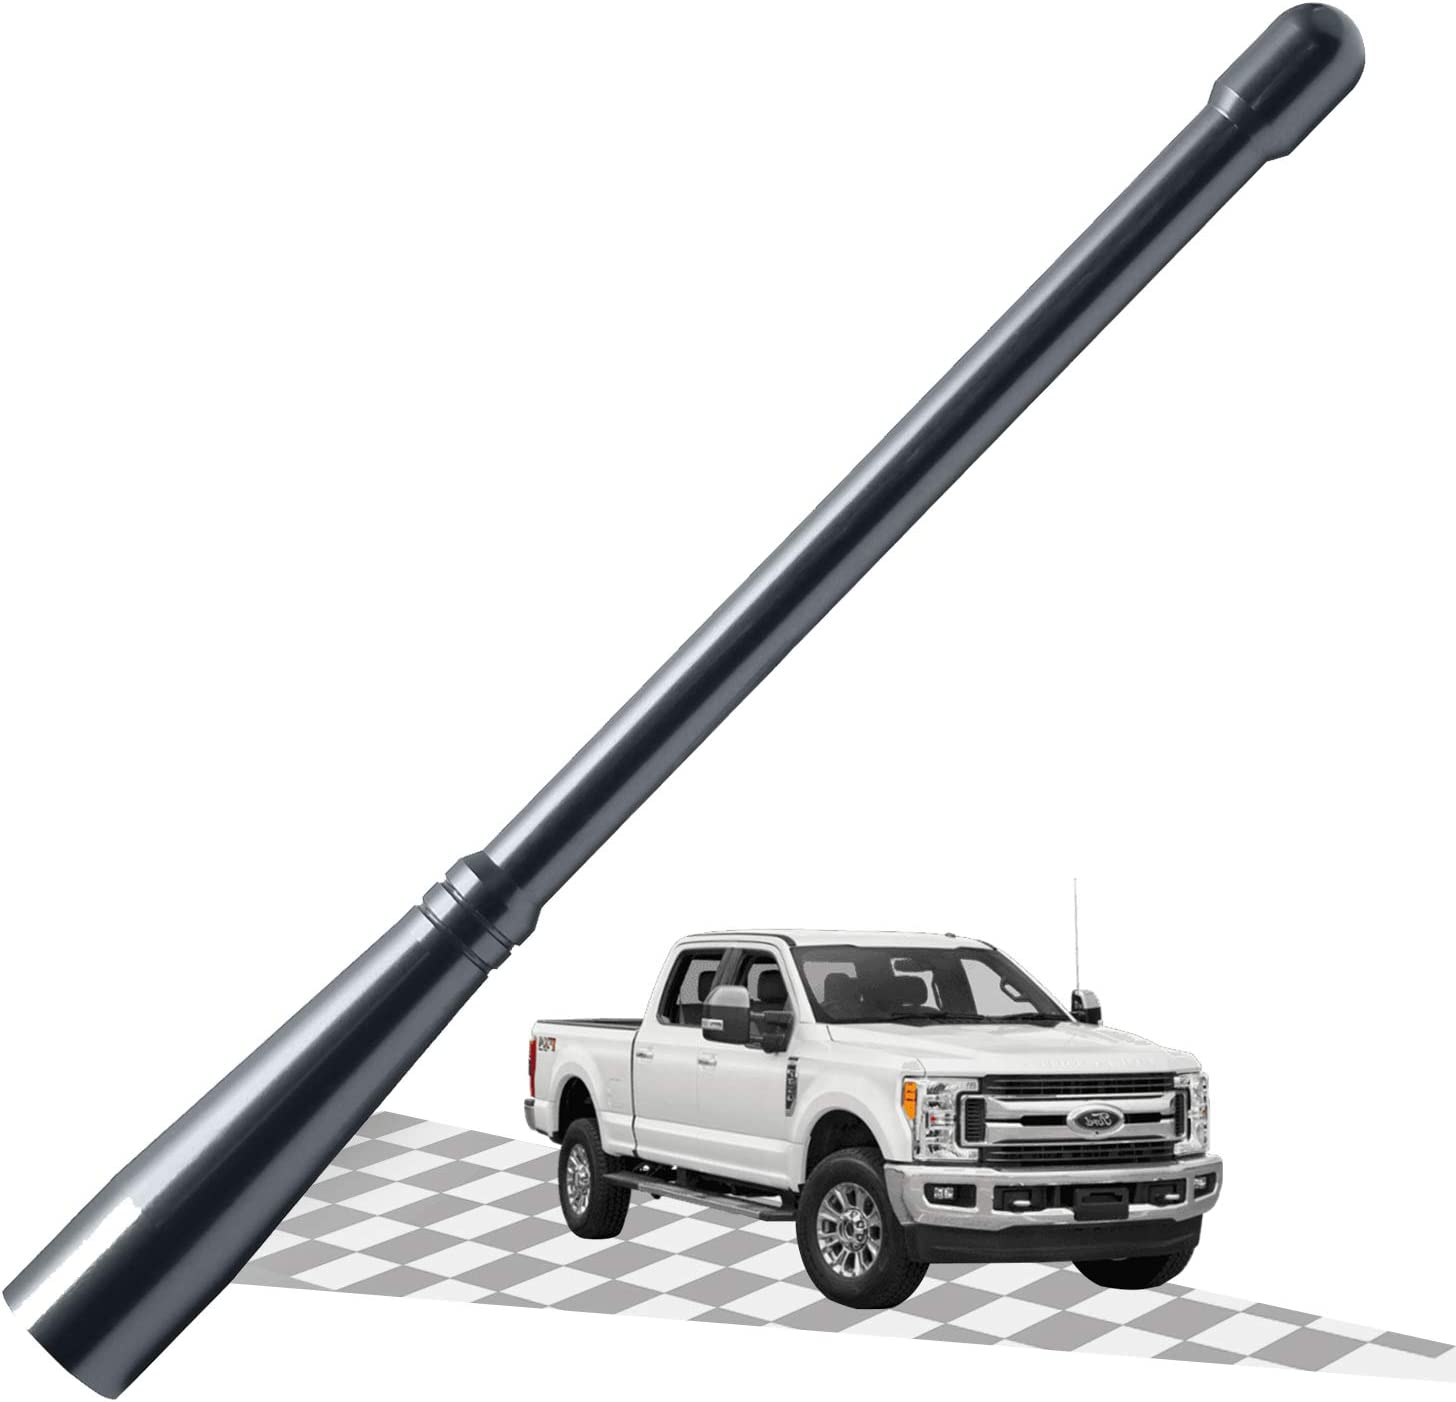 Elitezip Antenna Compatible with Dodge RAM 2500 2012-2018 3.2 Inches Carbon/ Black Optimized AM//FM Reception with Tough Material